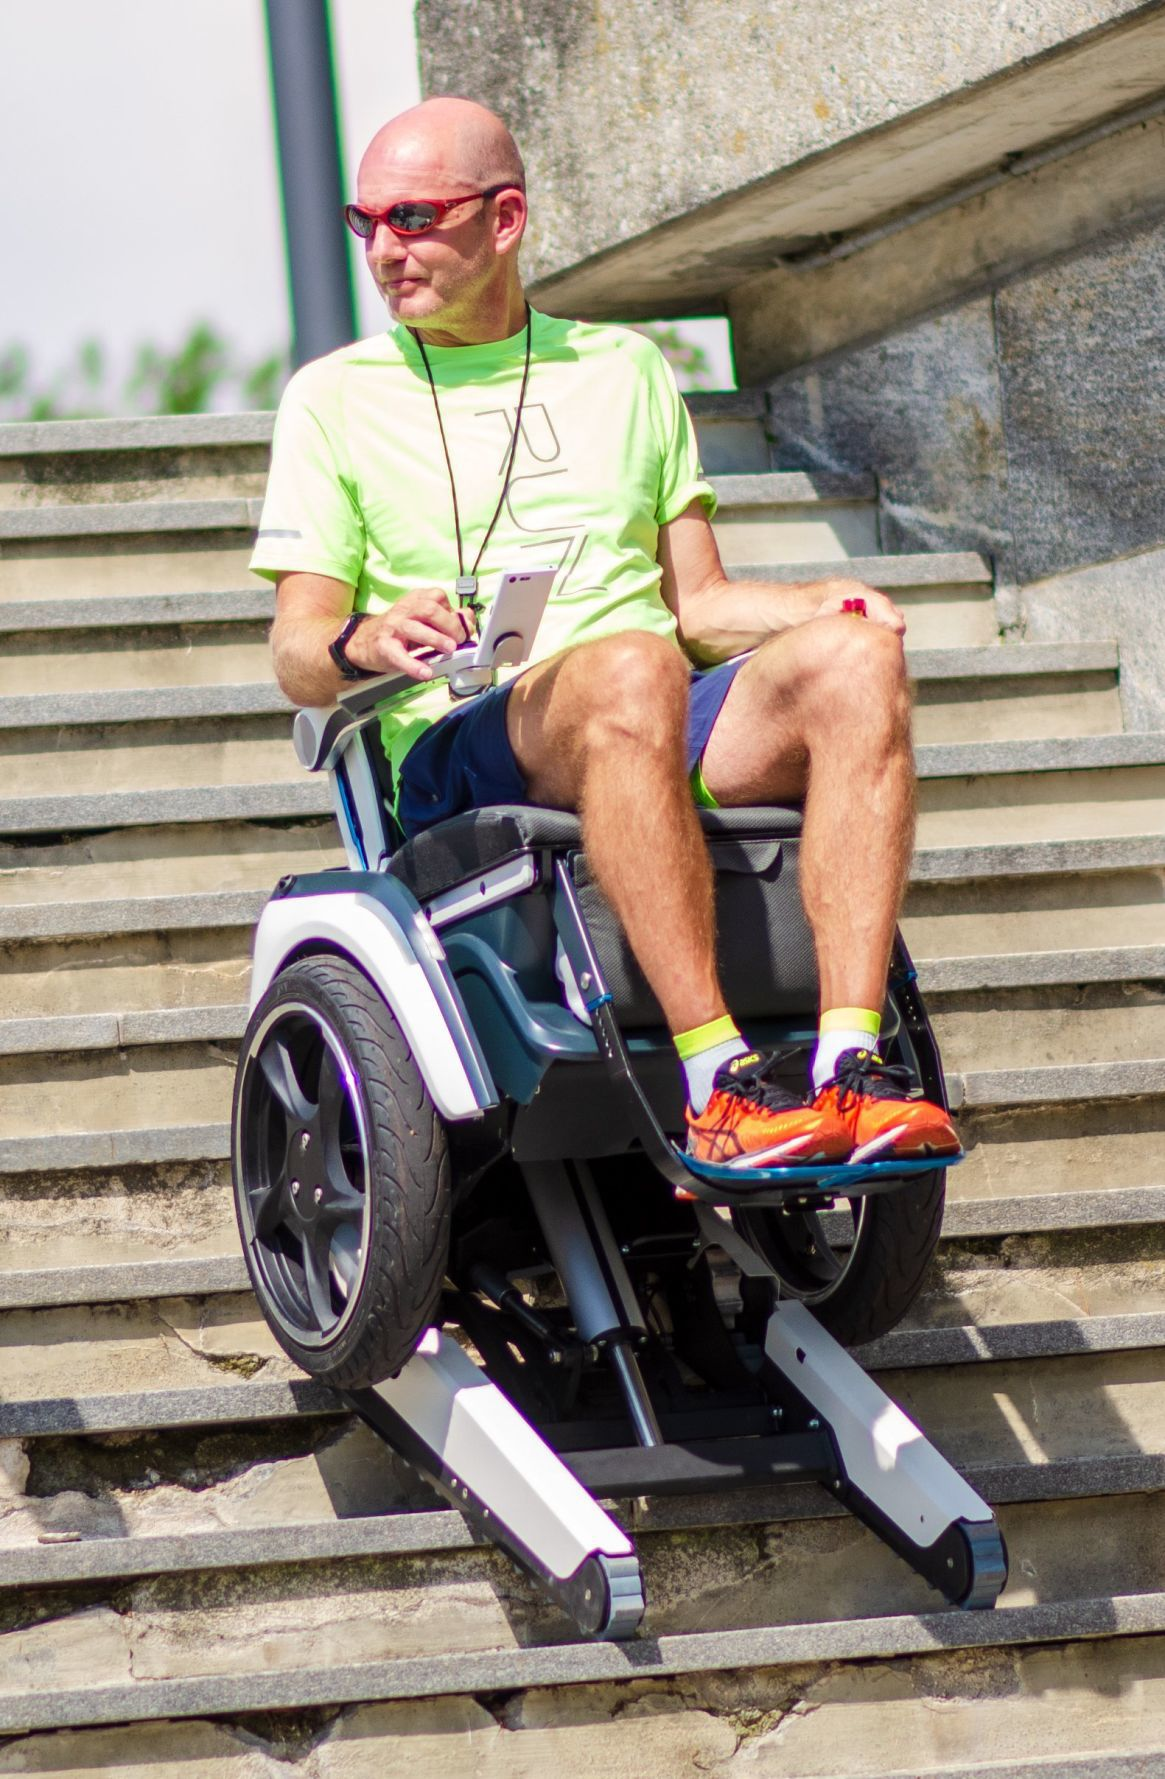 Tech empowers disabled people in cities   Business